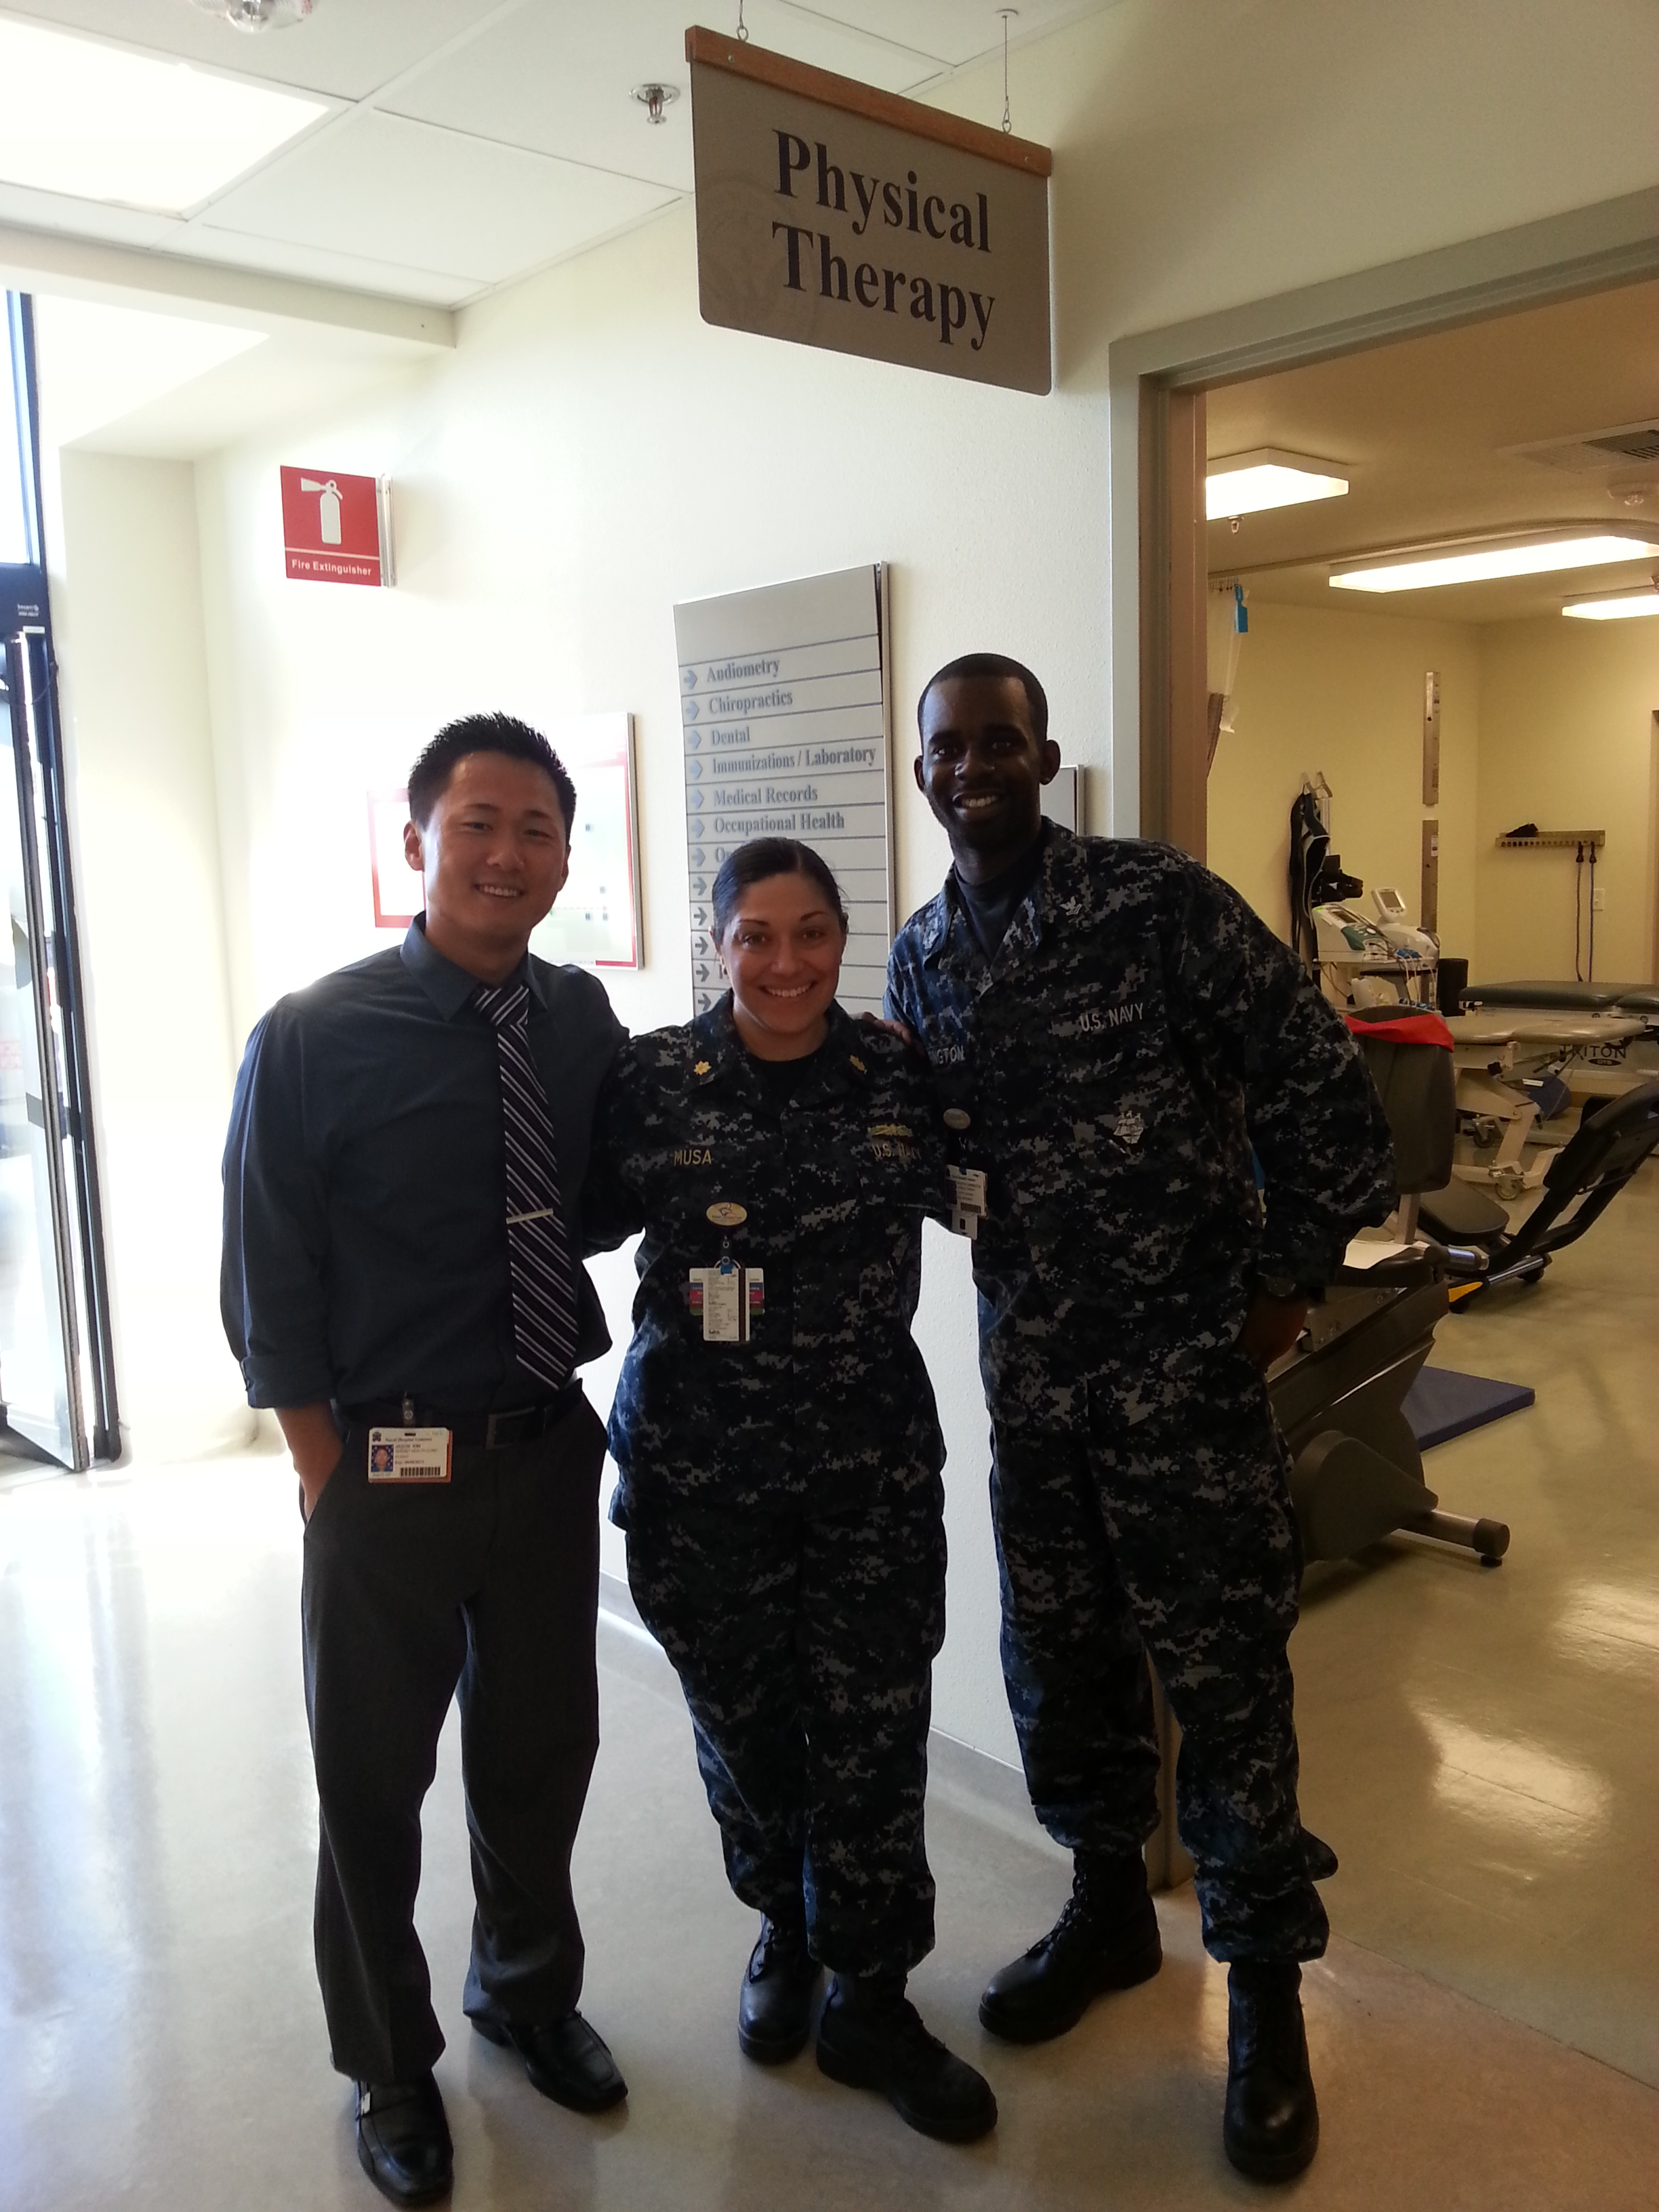 Physical Therapy, Naval Hospital, Lemoore, CA